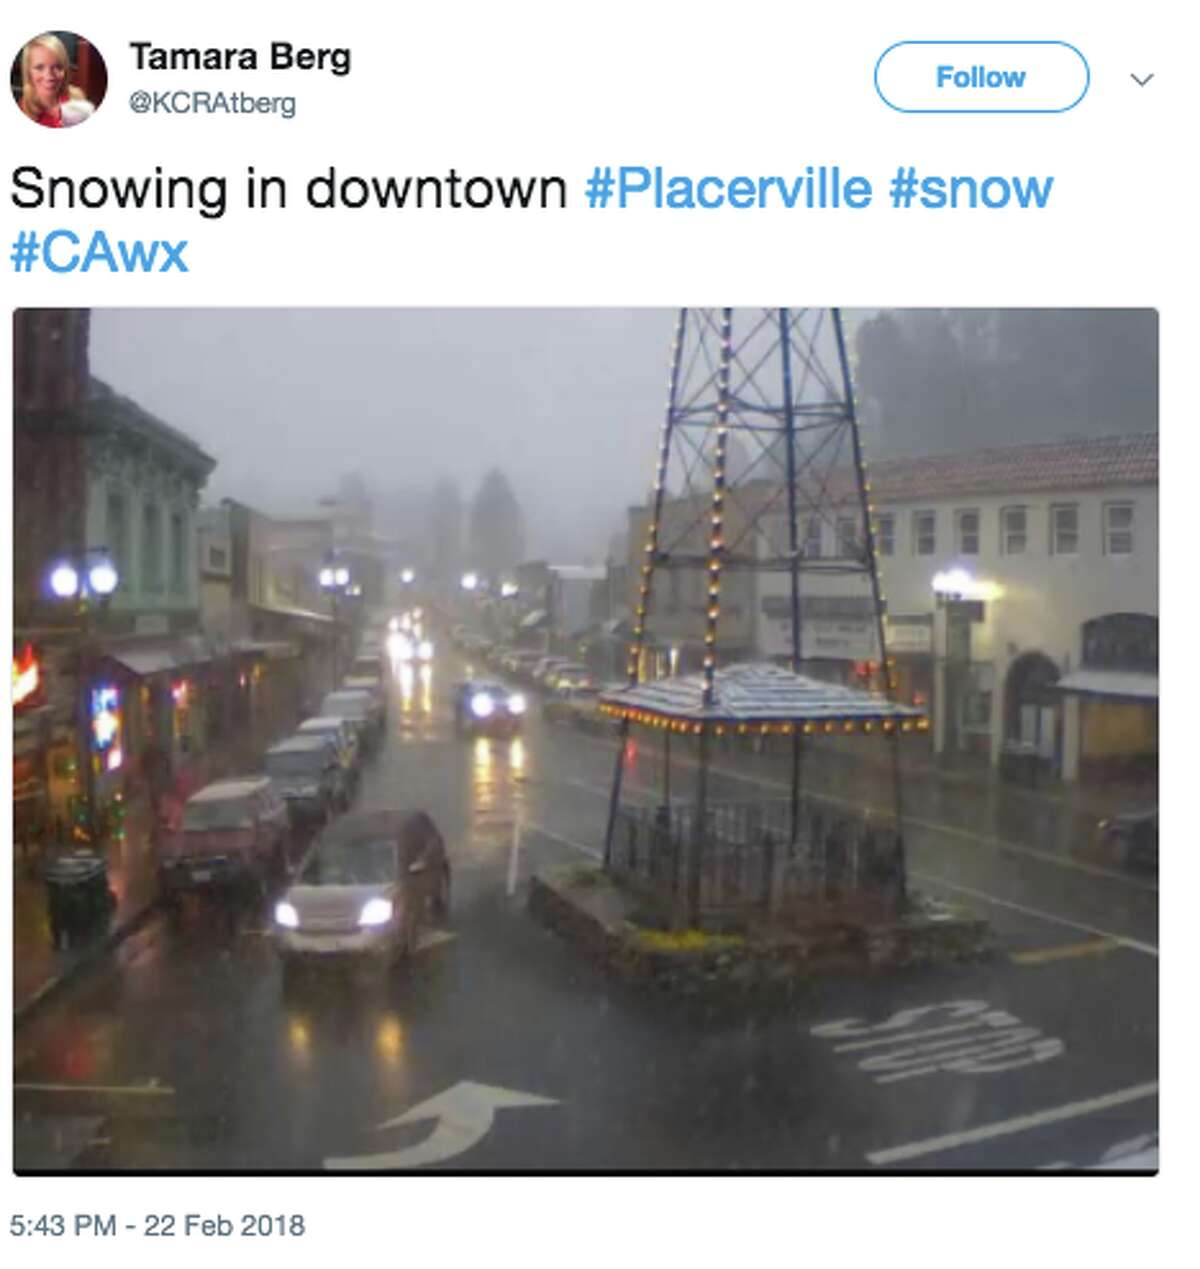 Placerville, elevation 1,867 feet A cold winter storm brought snow and ice to elevations as low as 1,500 feet elevation in the foothills of the northern Sierra Nevada on Feb. 22, 2018.